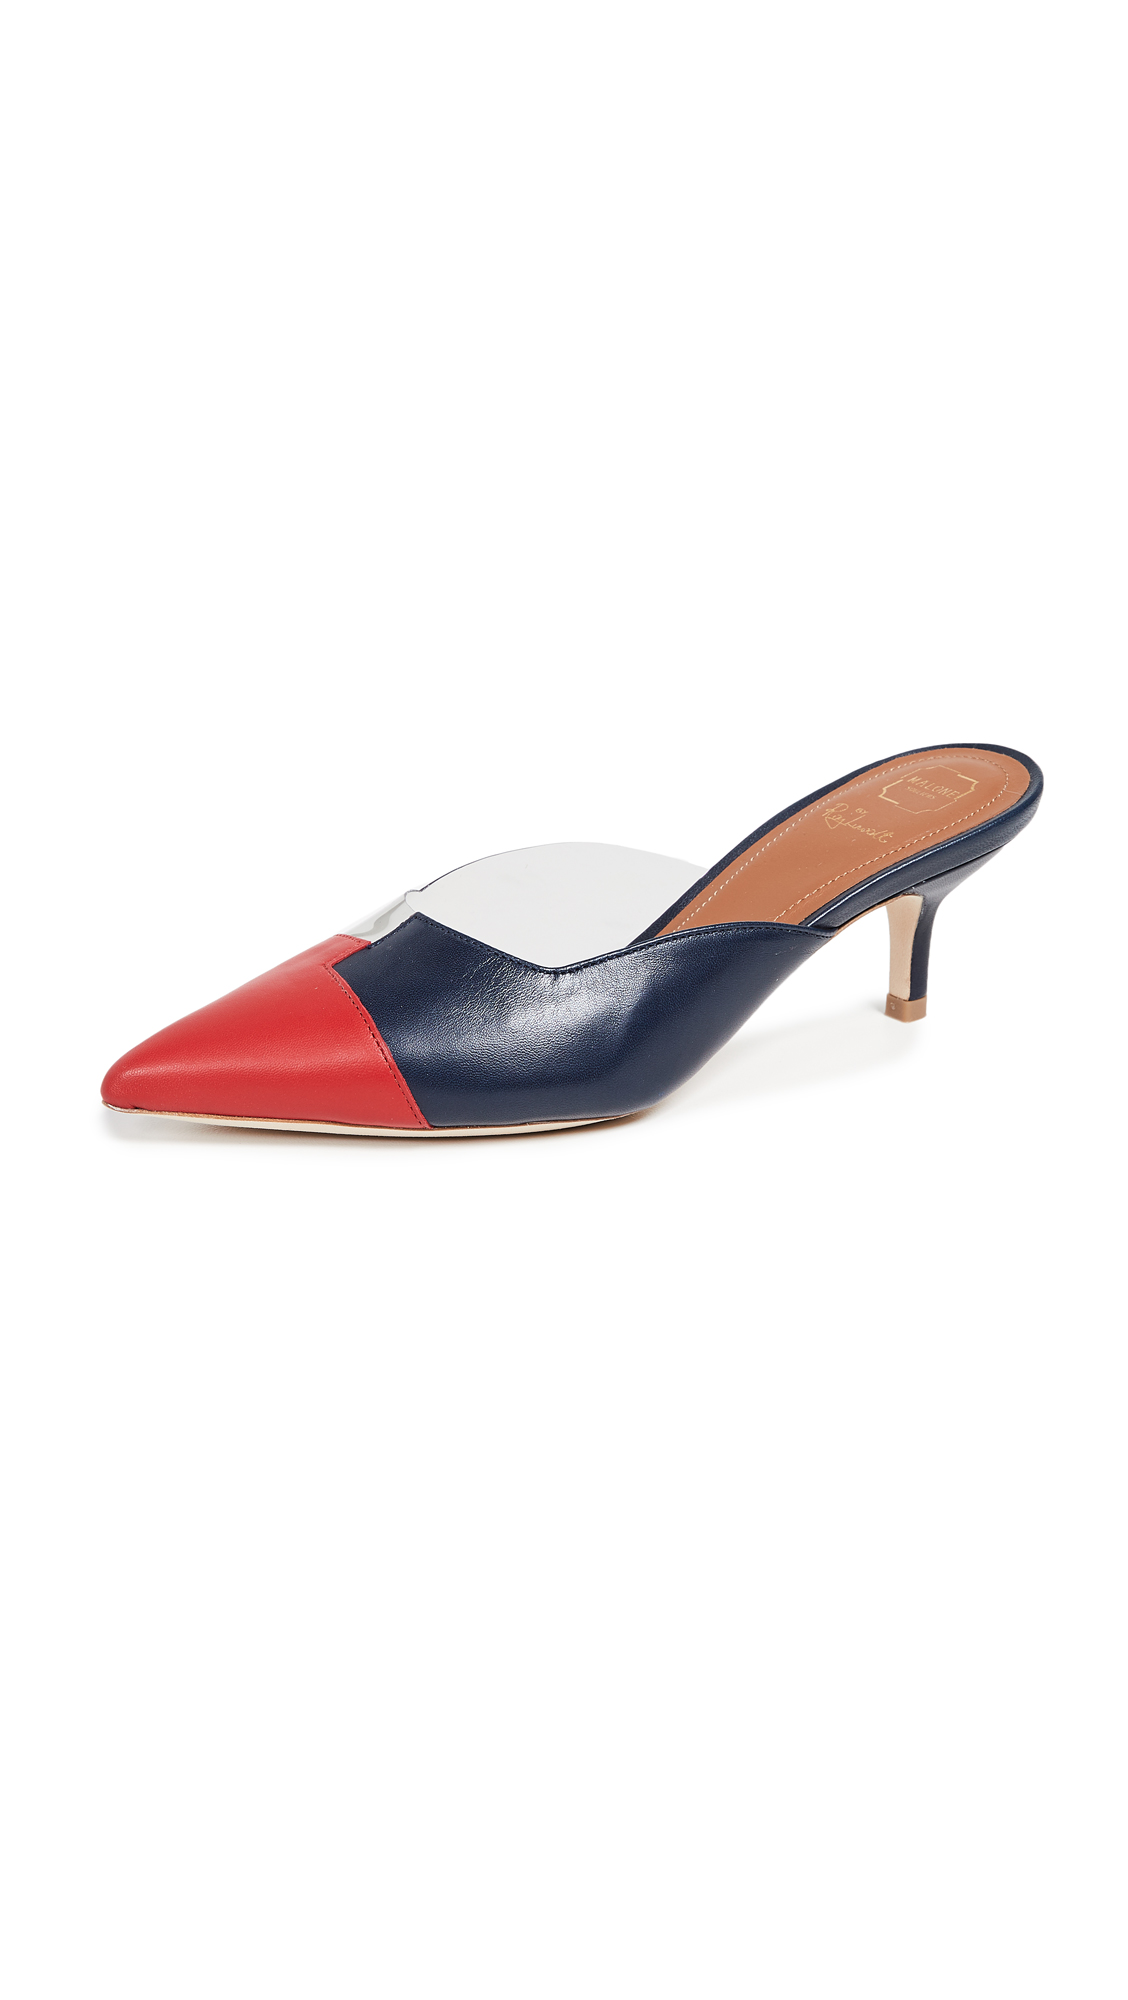 Malone Souliers Blake 45 Pumps - Grey/Red/Midnight